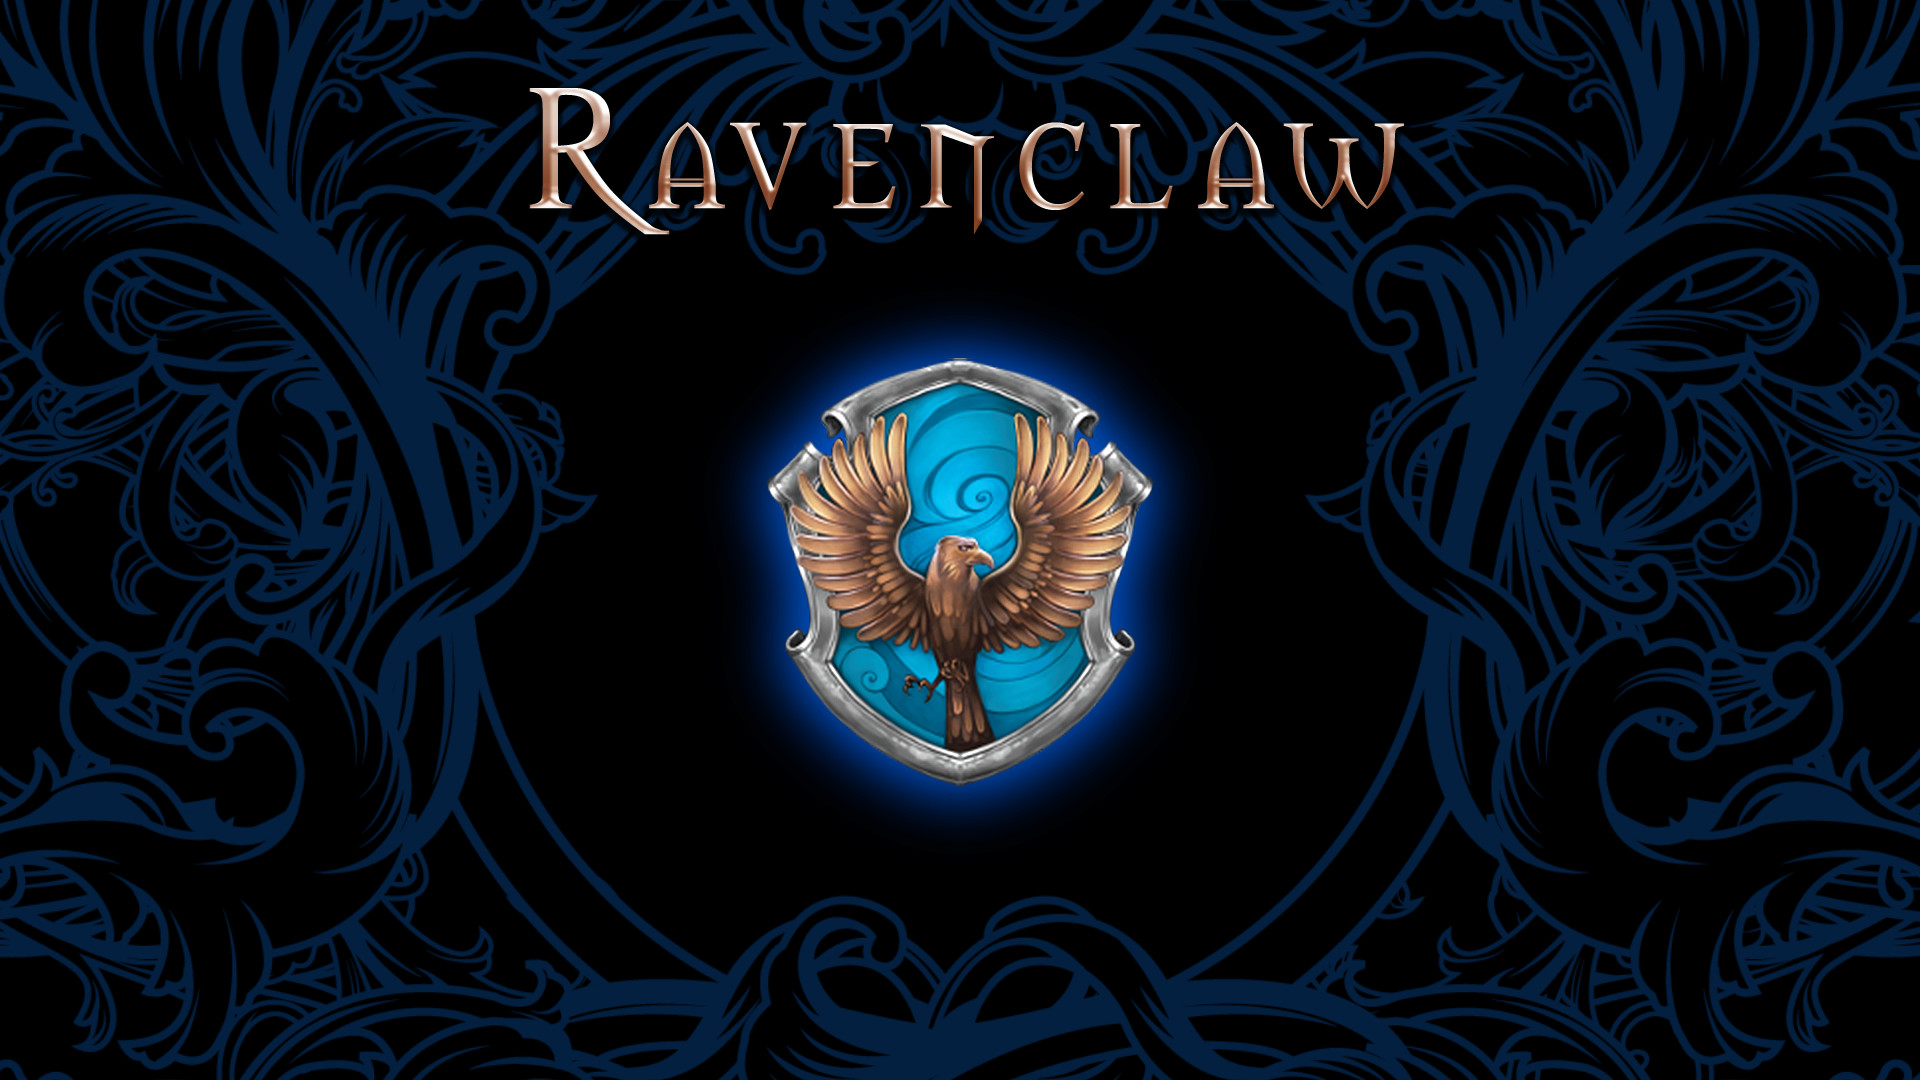 Res: 1920x1080, 03.13.18, Ravenclaw Wallpaper HD HD Widescreen - Pack.263